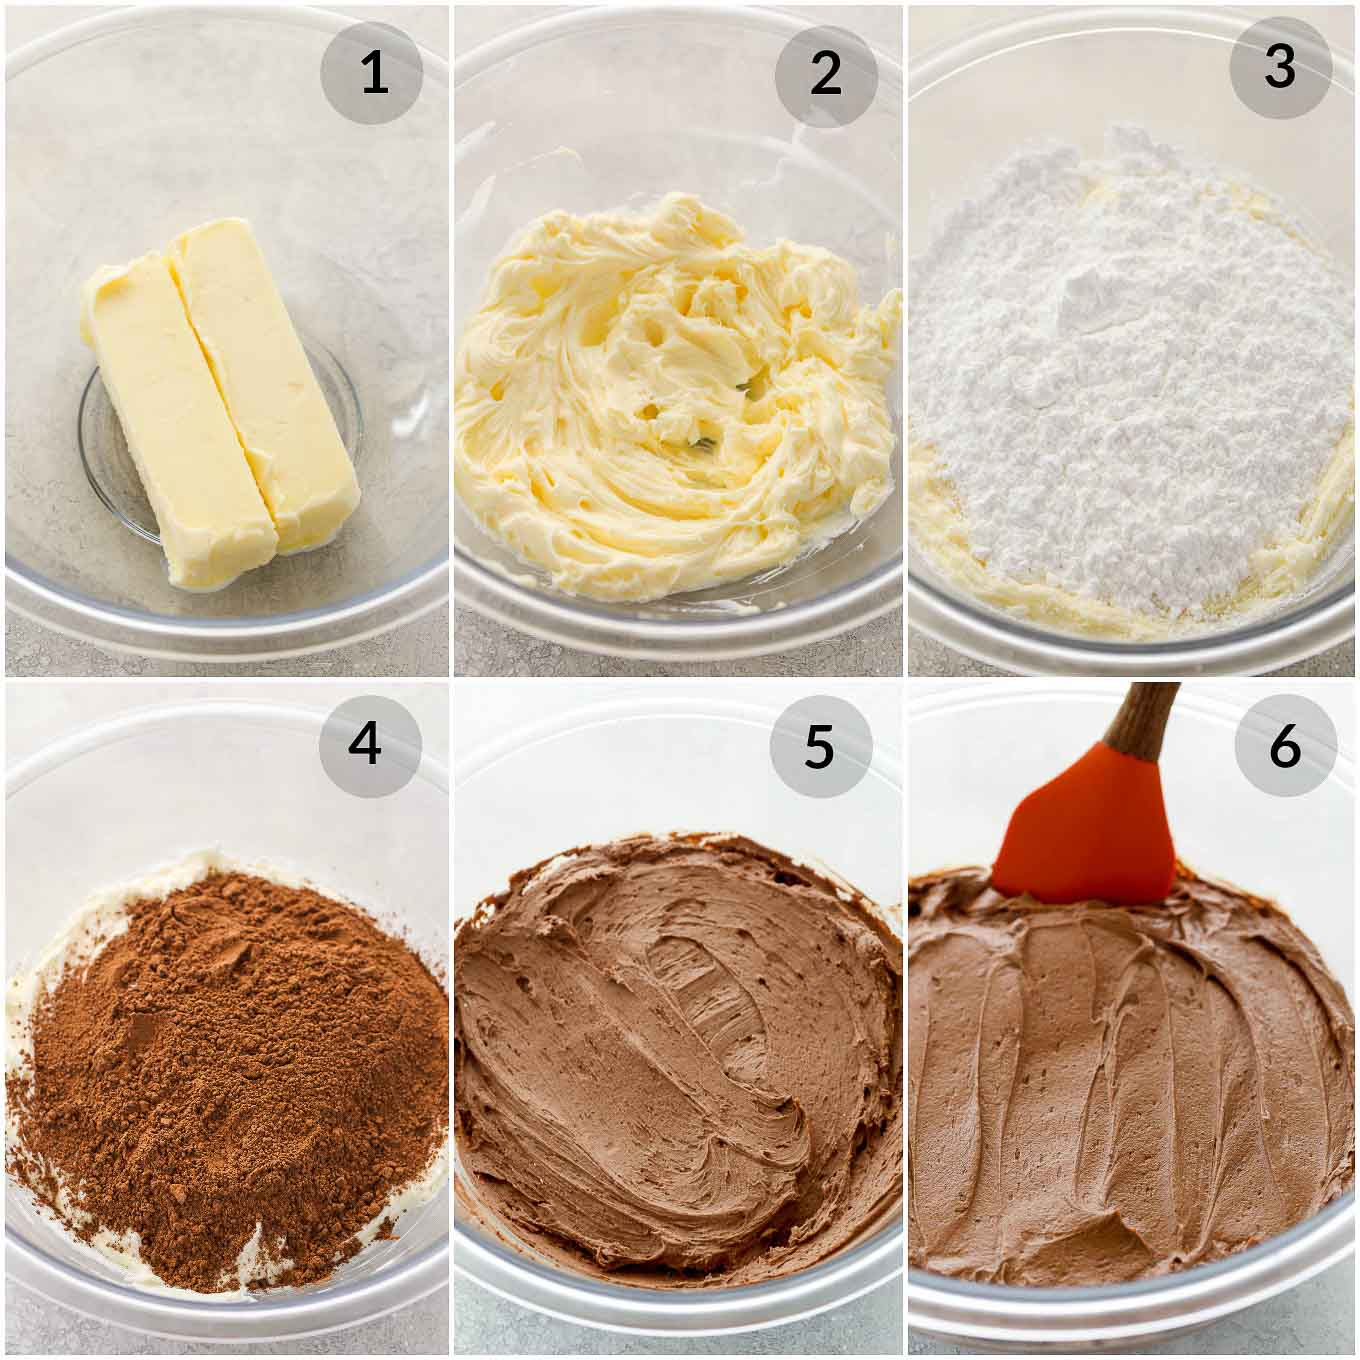 Learn How To Make Chocolate Buttercream Frosting With This Easy Recipe And Tutorial Is